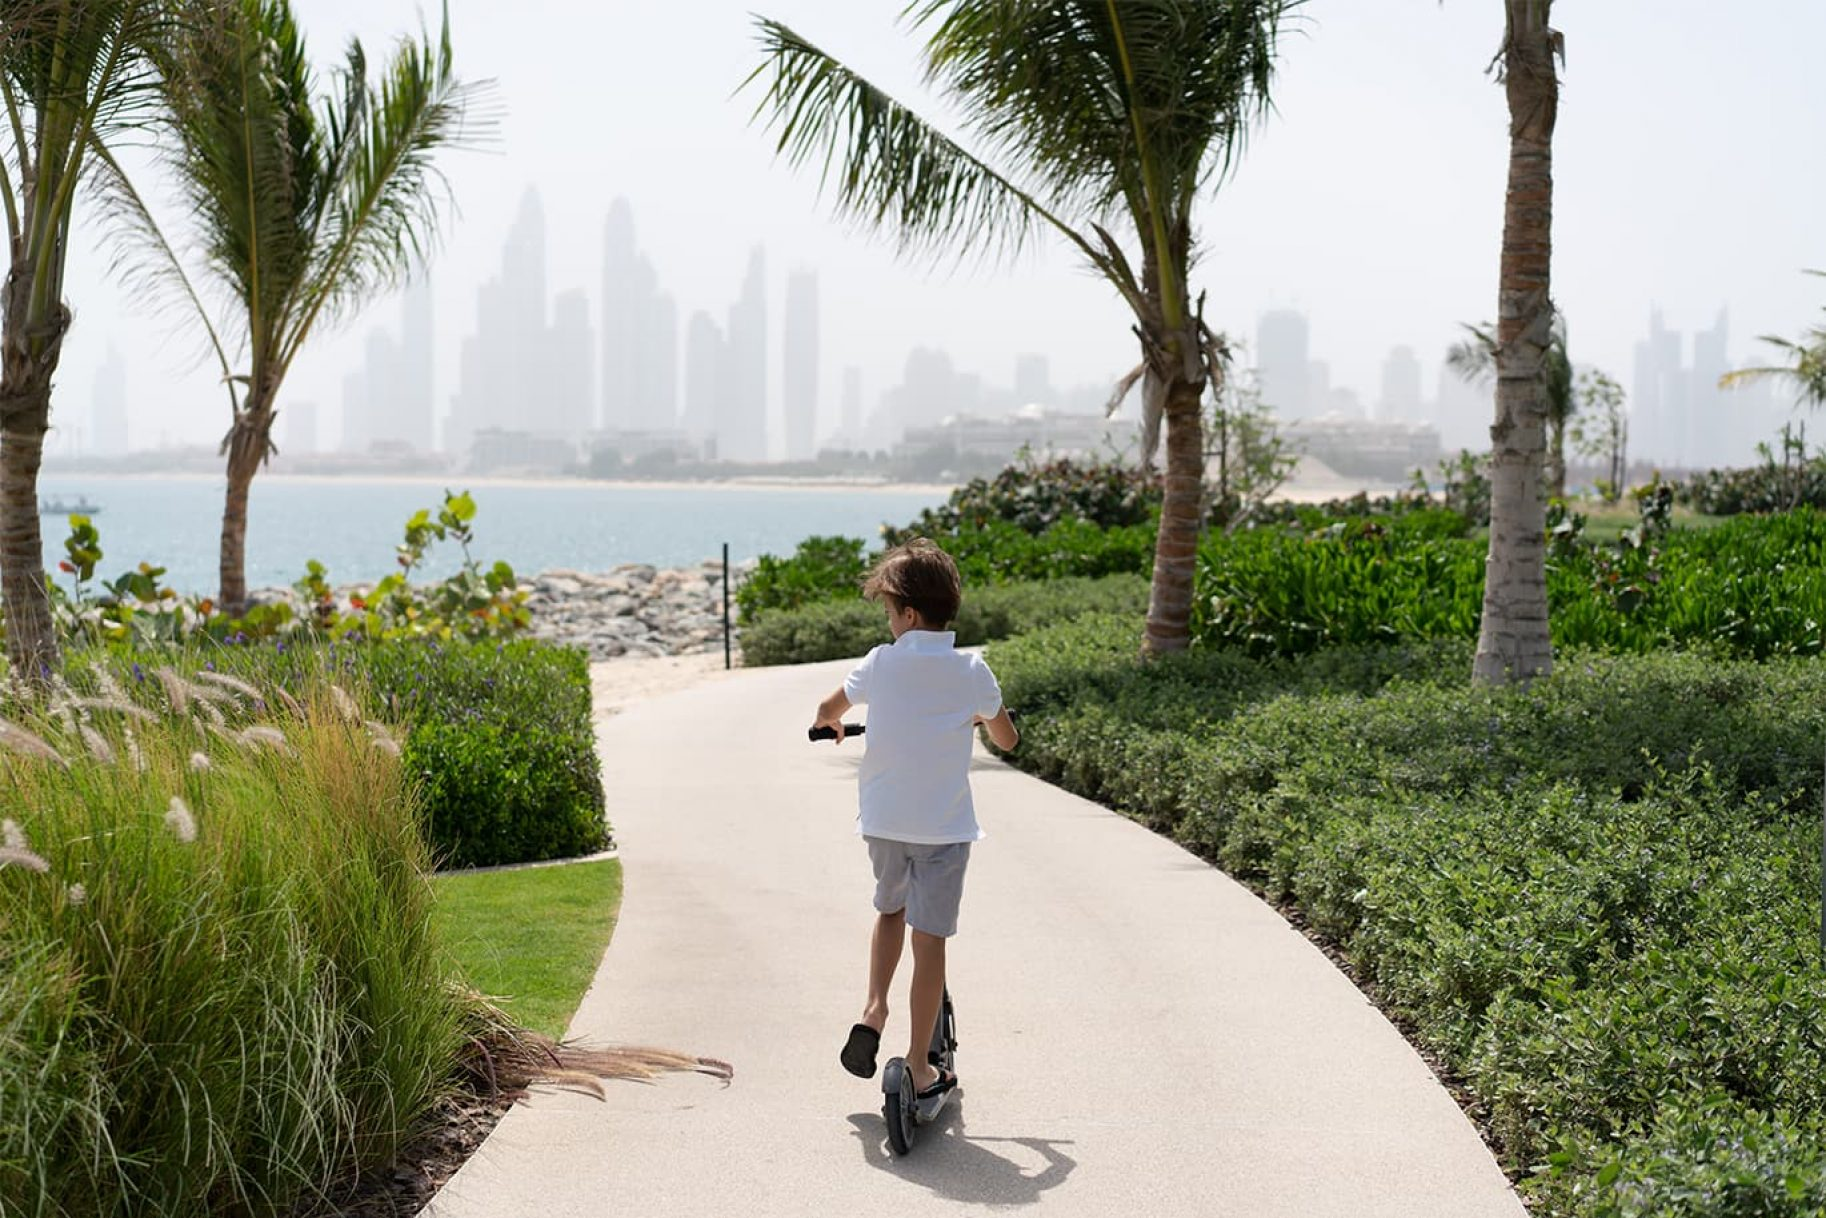 A boy scoots down a palm lined path with the city of Dubai in front of him